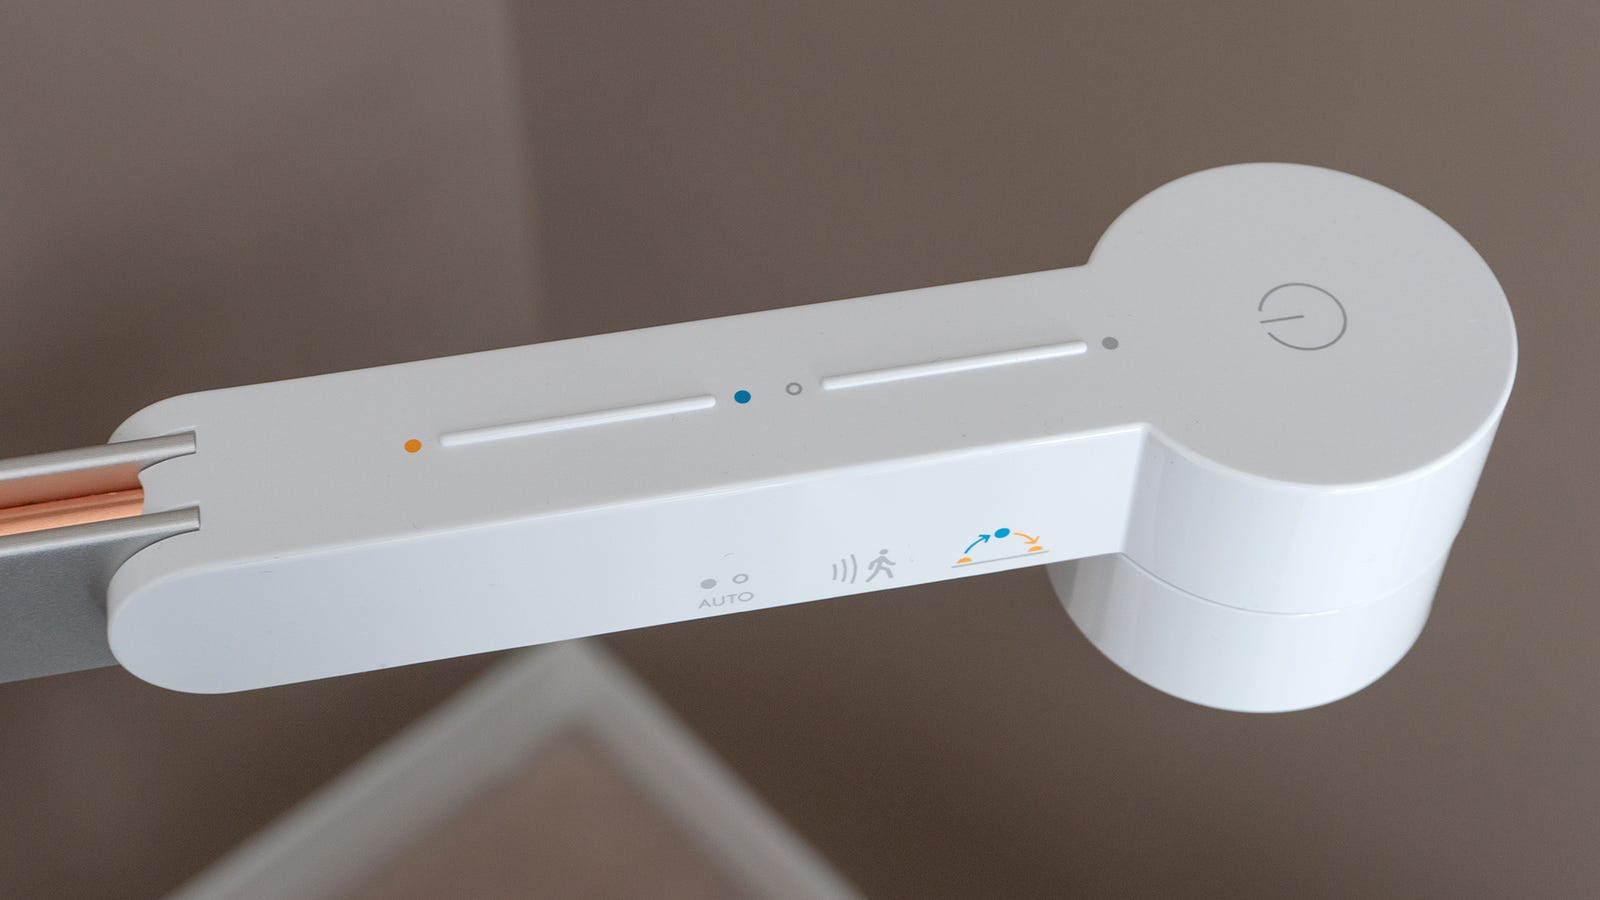 At the end of the horizontal arm, you'll find the lamp's LED light source, which can be manually operated using a pair of touch-sensitive strips that control the brightness of the illumination and the color temperature, or a touch-sensitive button to turn it on and off.